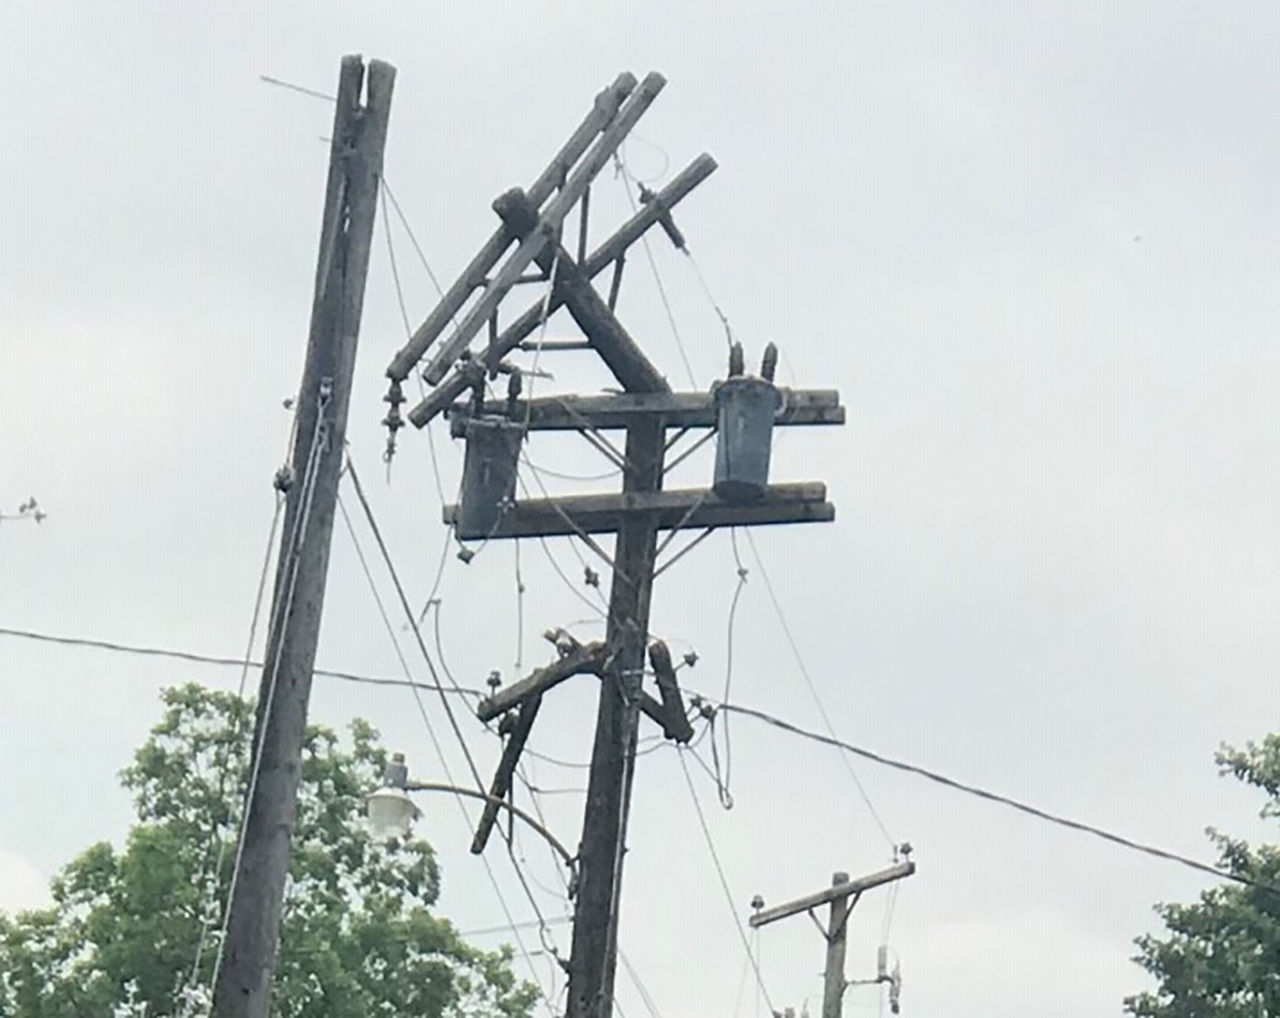 The latest information regarding Texas storm outages